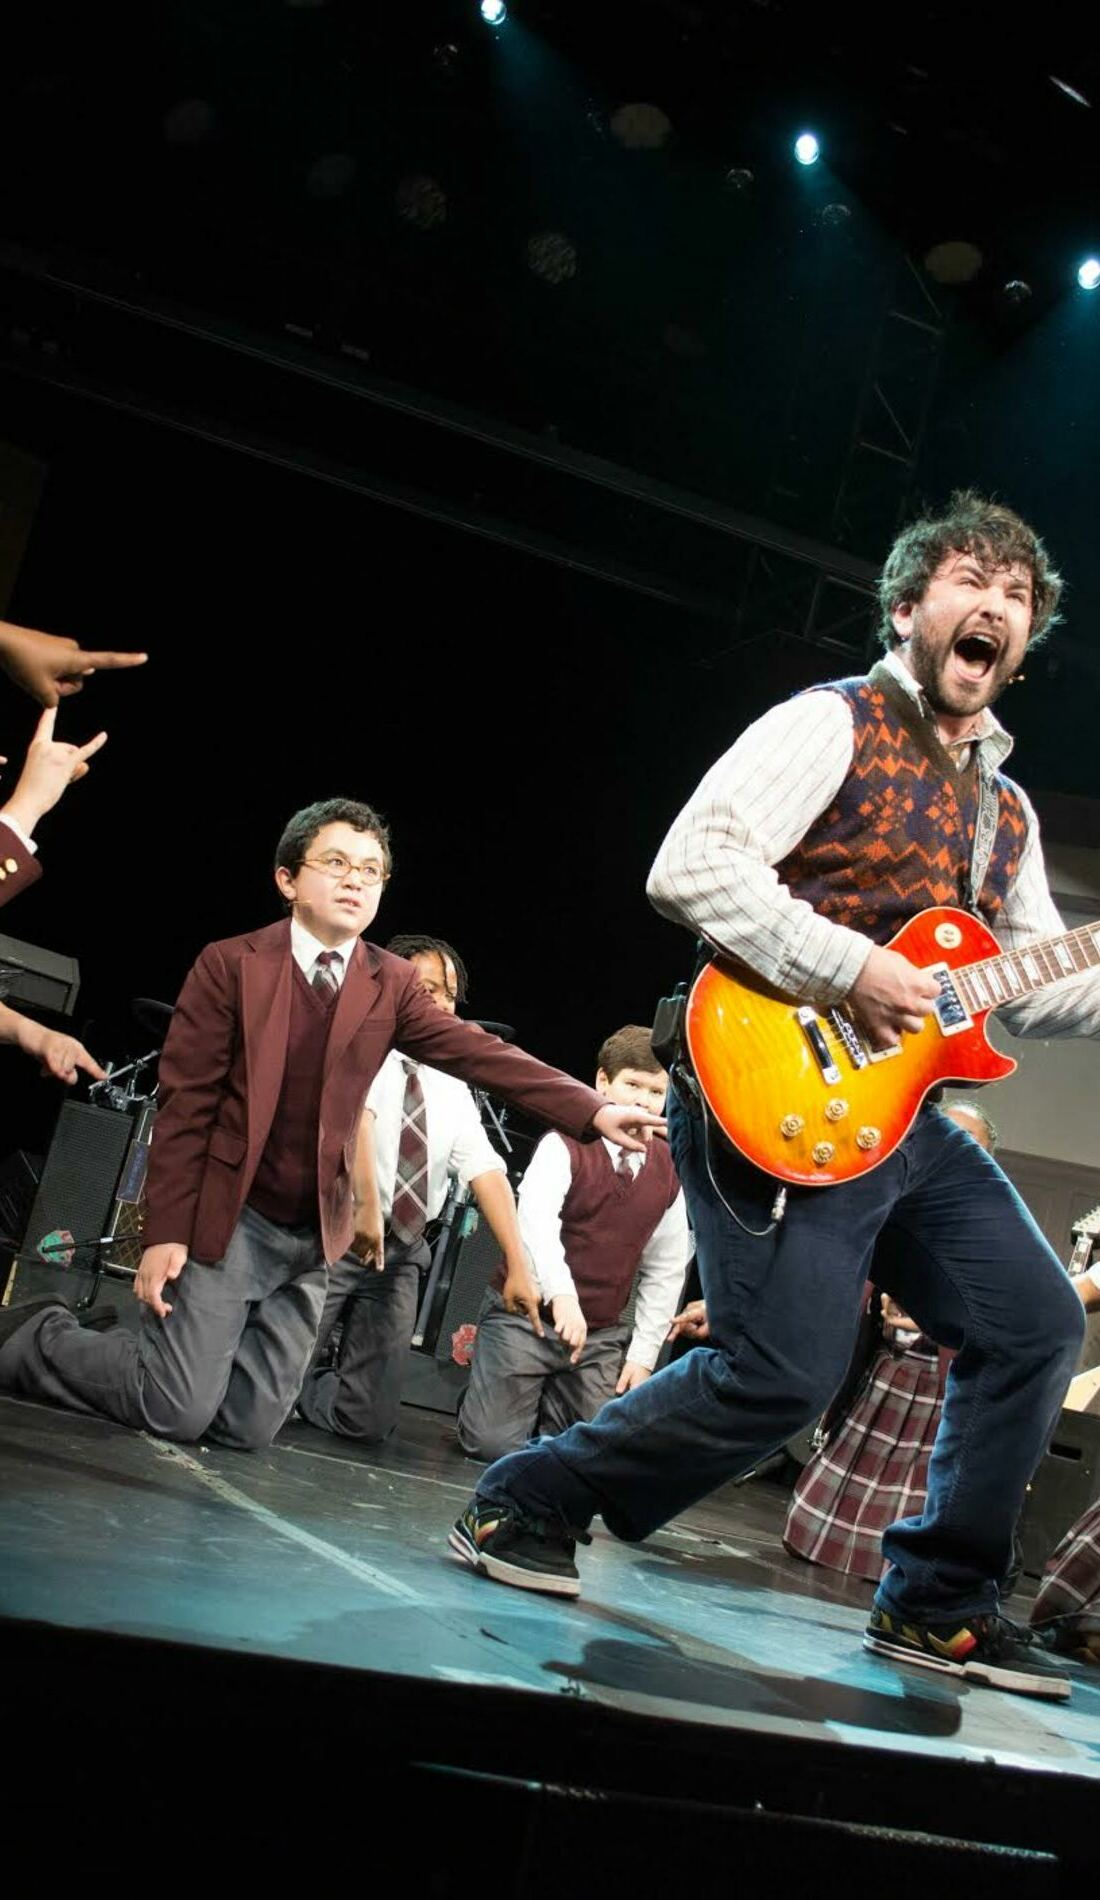 A School of Rock (The Musical) live event